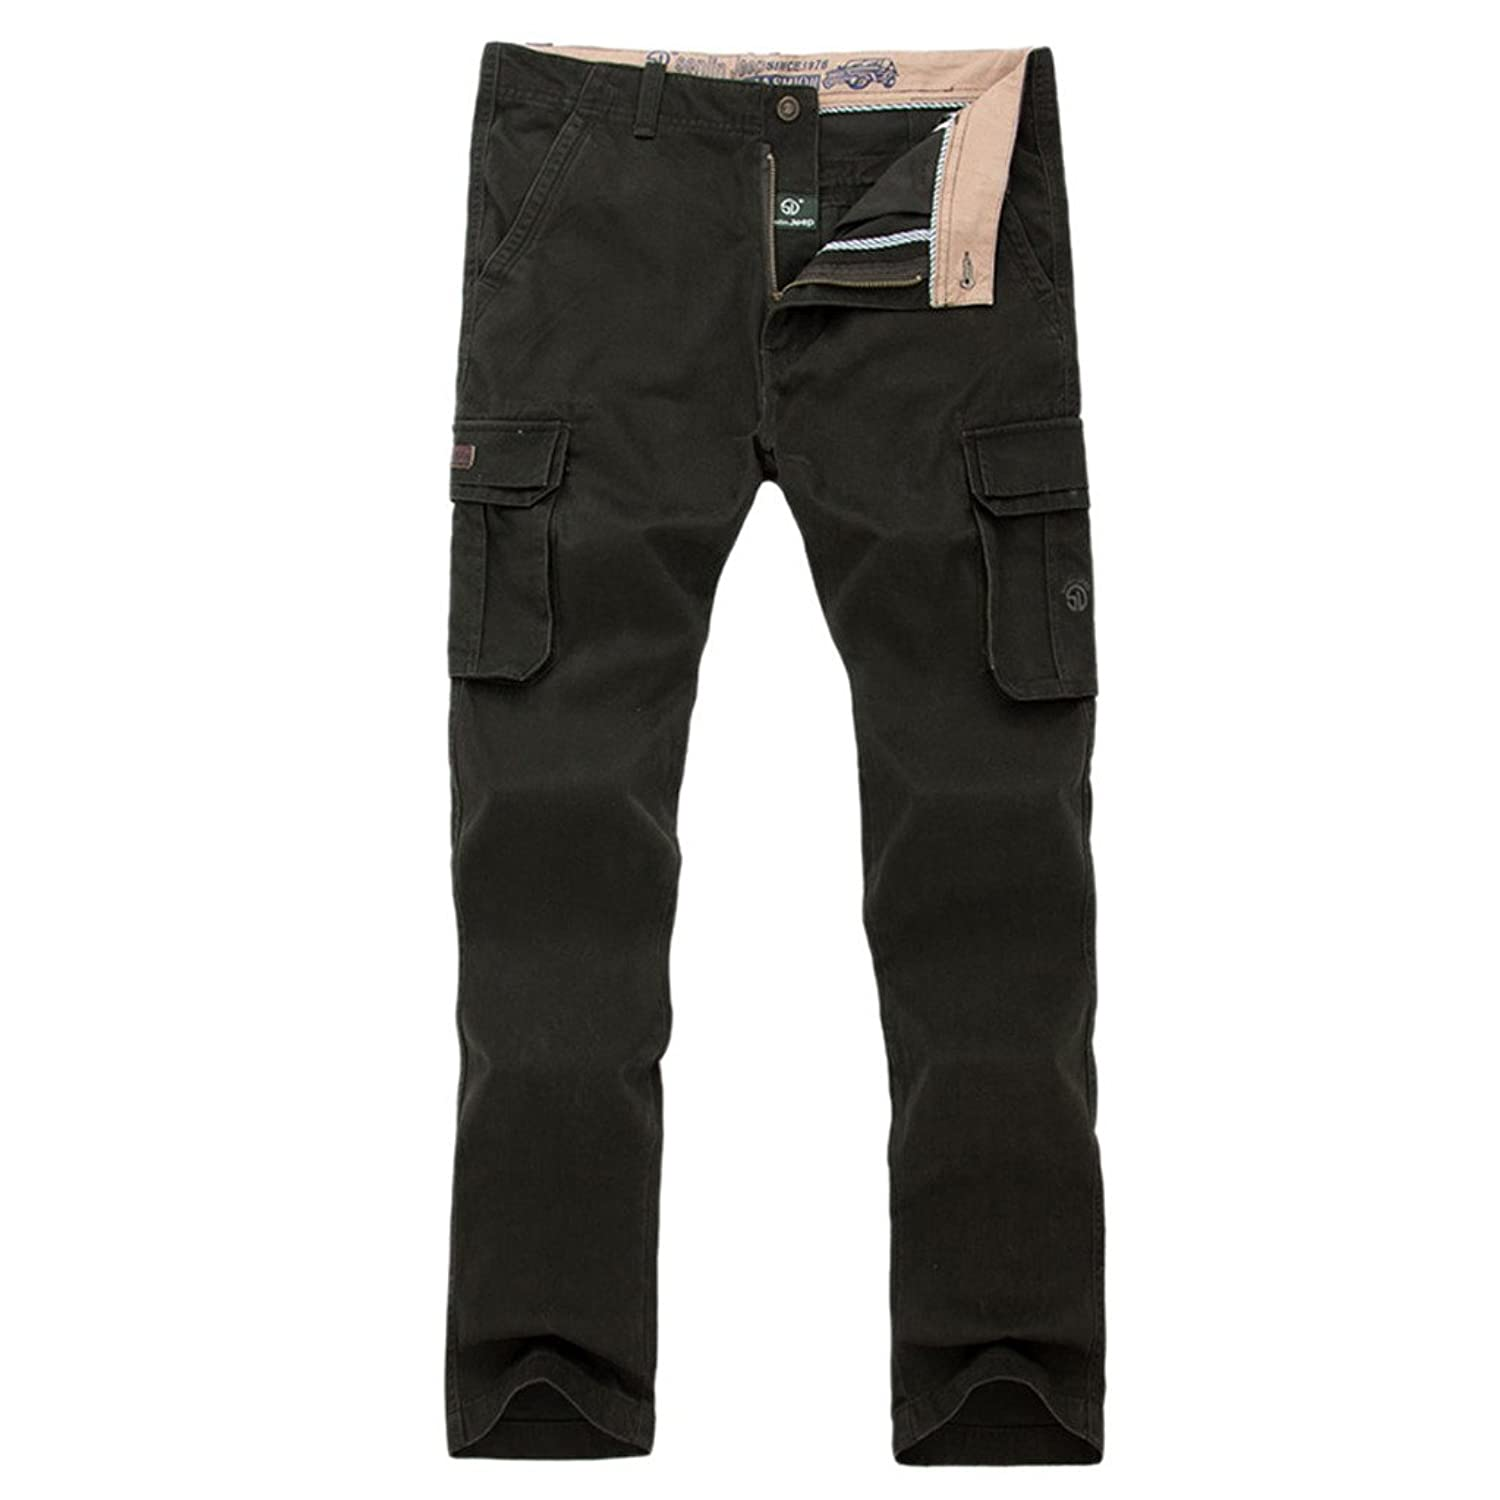 Dantiya Men's Cotton Army Cargo Pants Outdoors Active Trousers